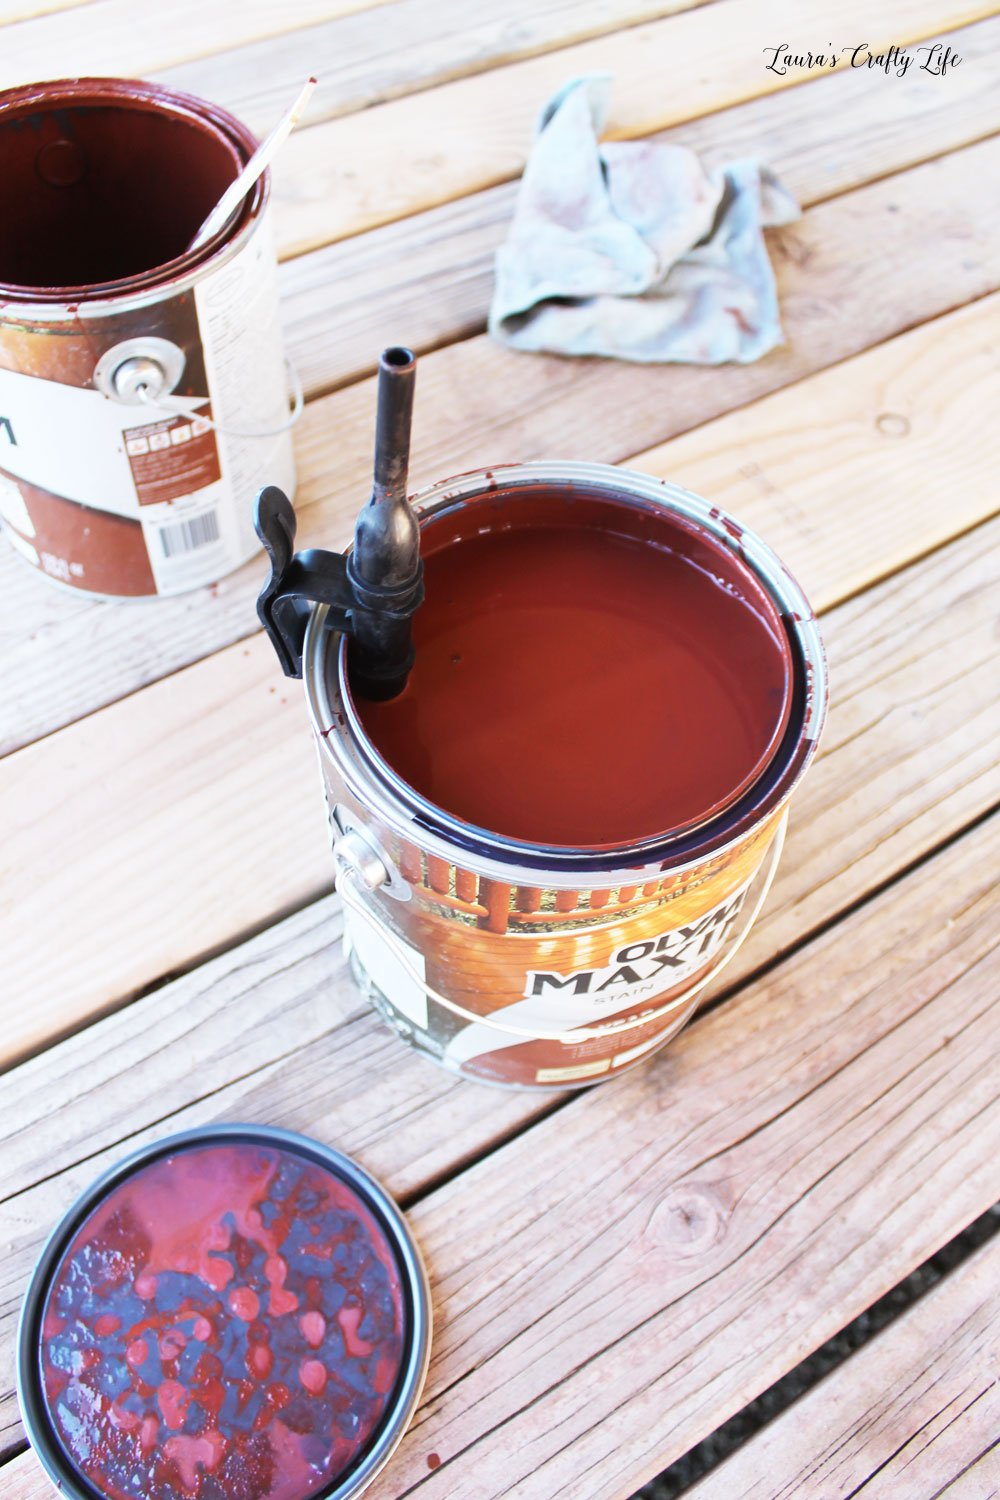 Attach fill tube to paint can